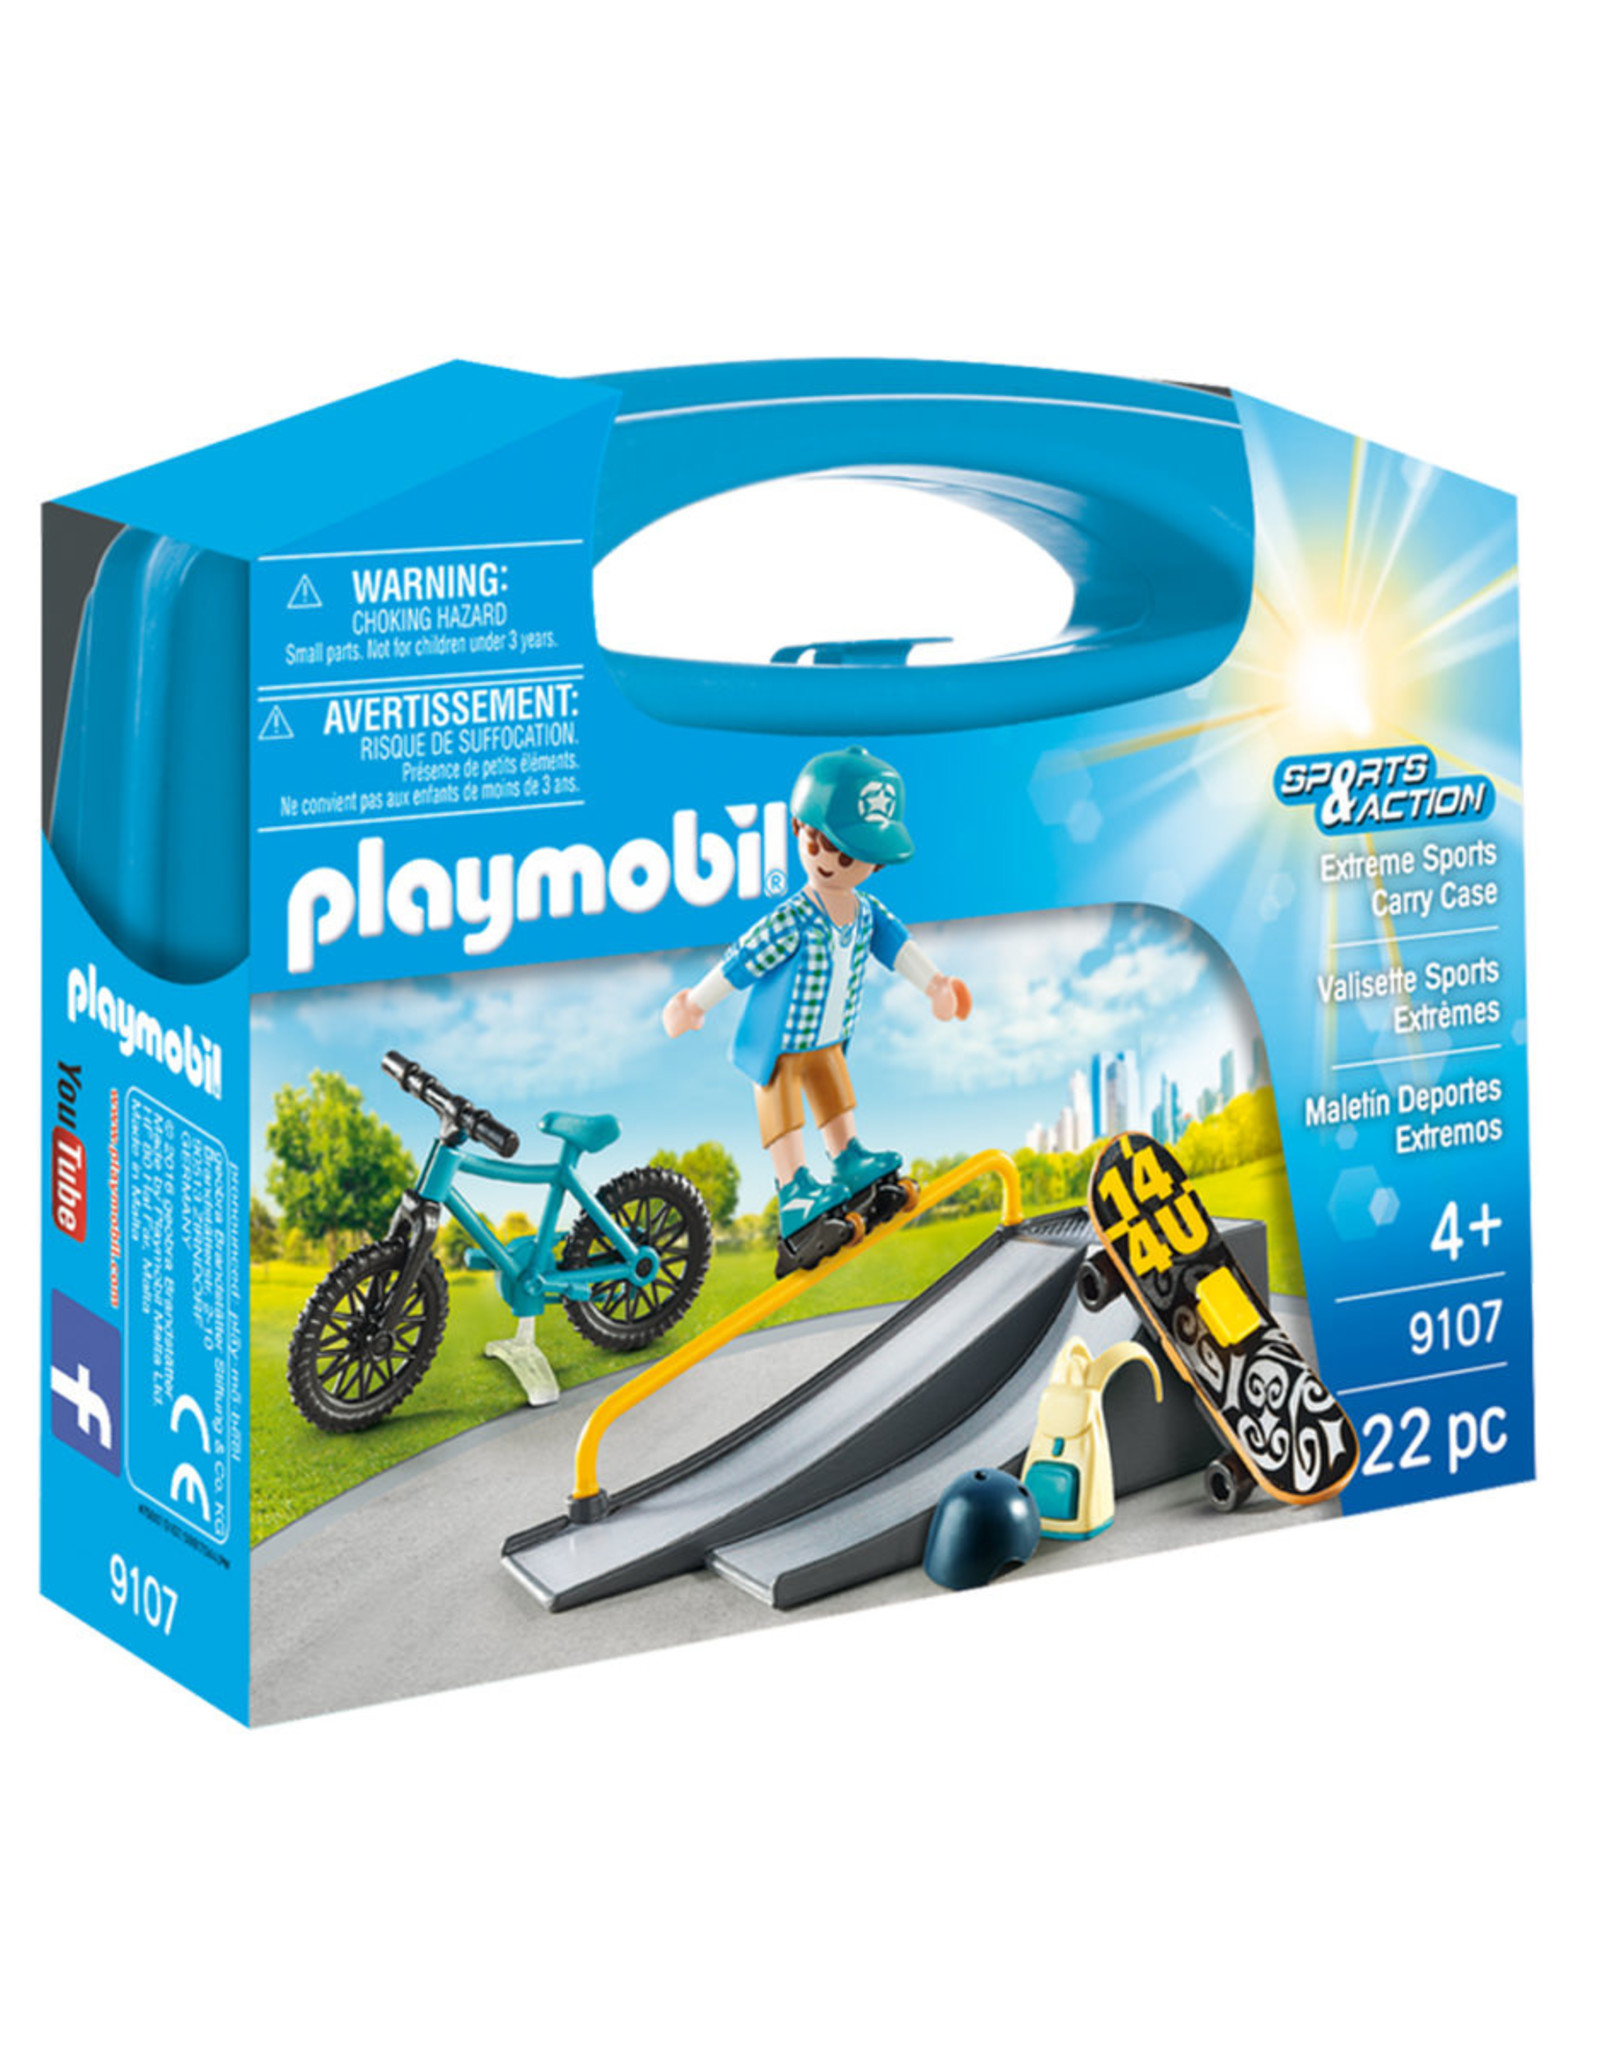 playmobil Playmobil - Extreme Sports Carry Case